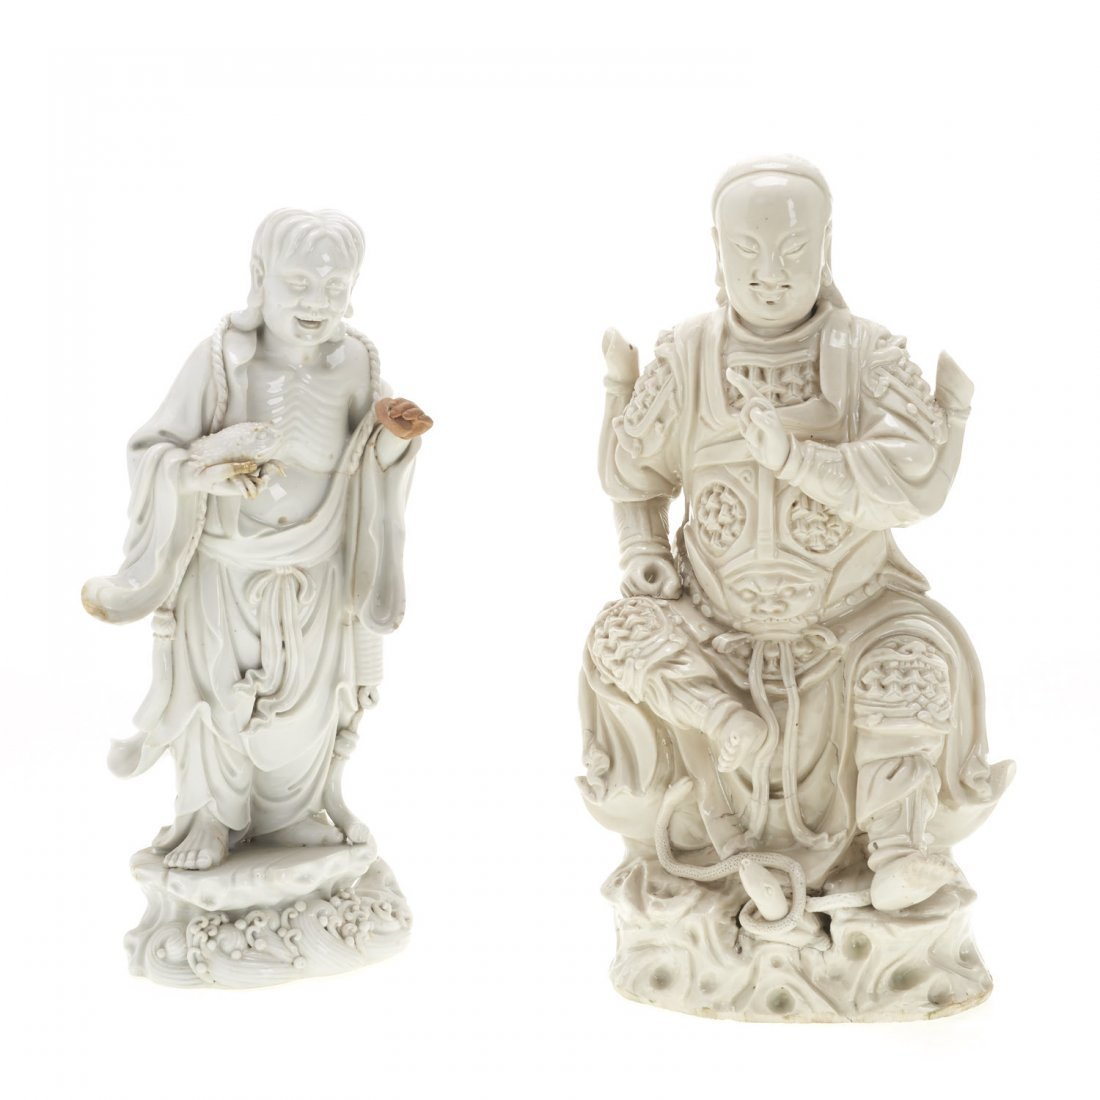 (2) Chinese blanc de chine figures